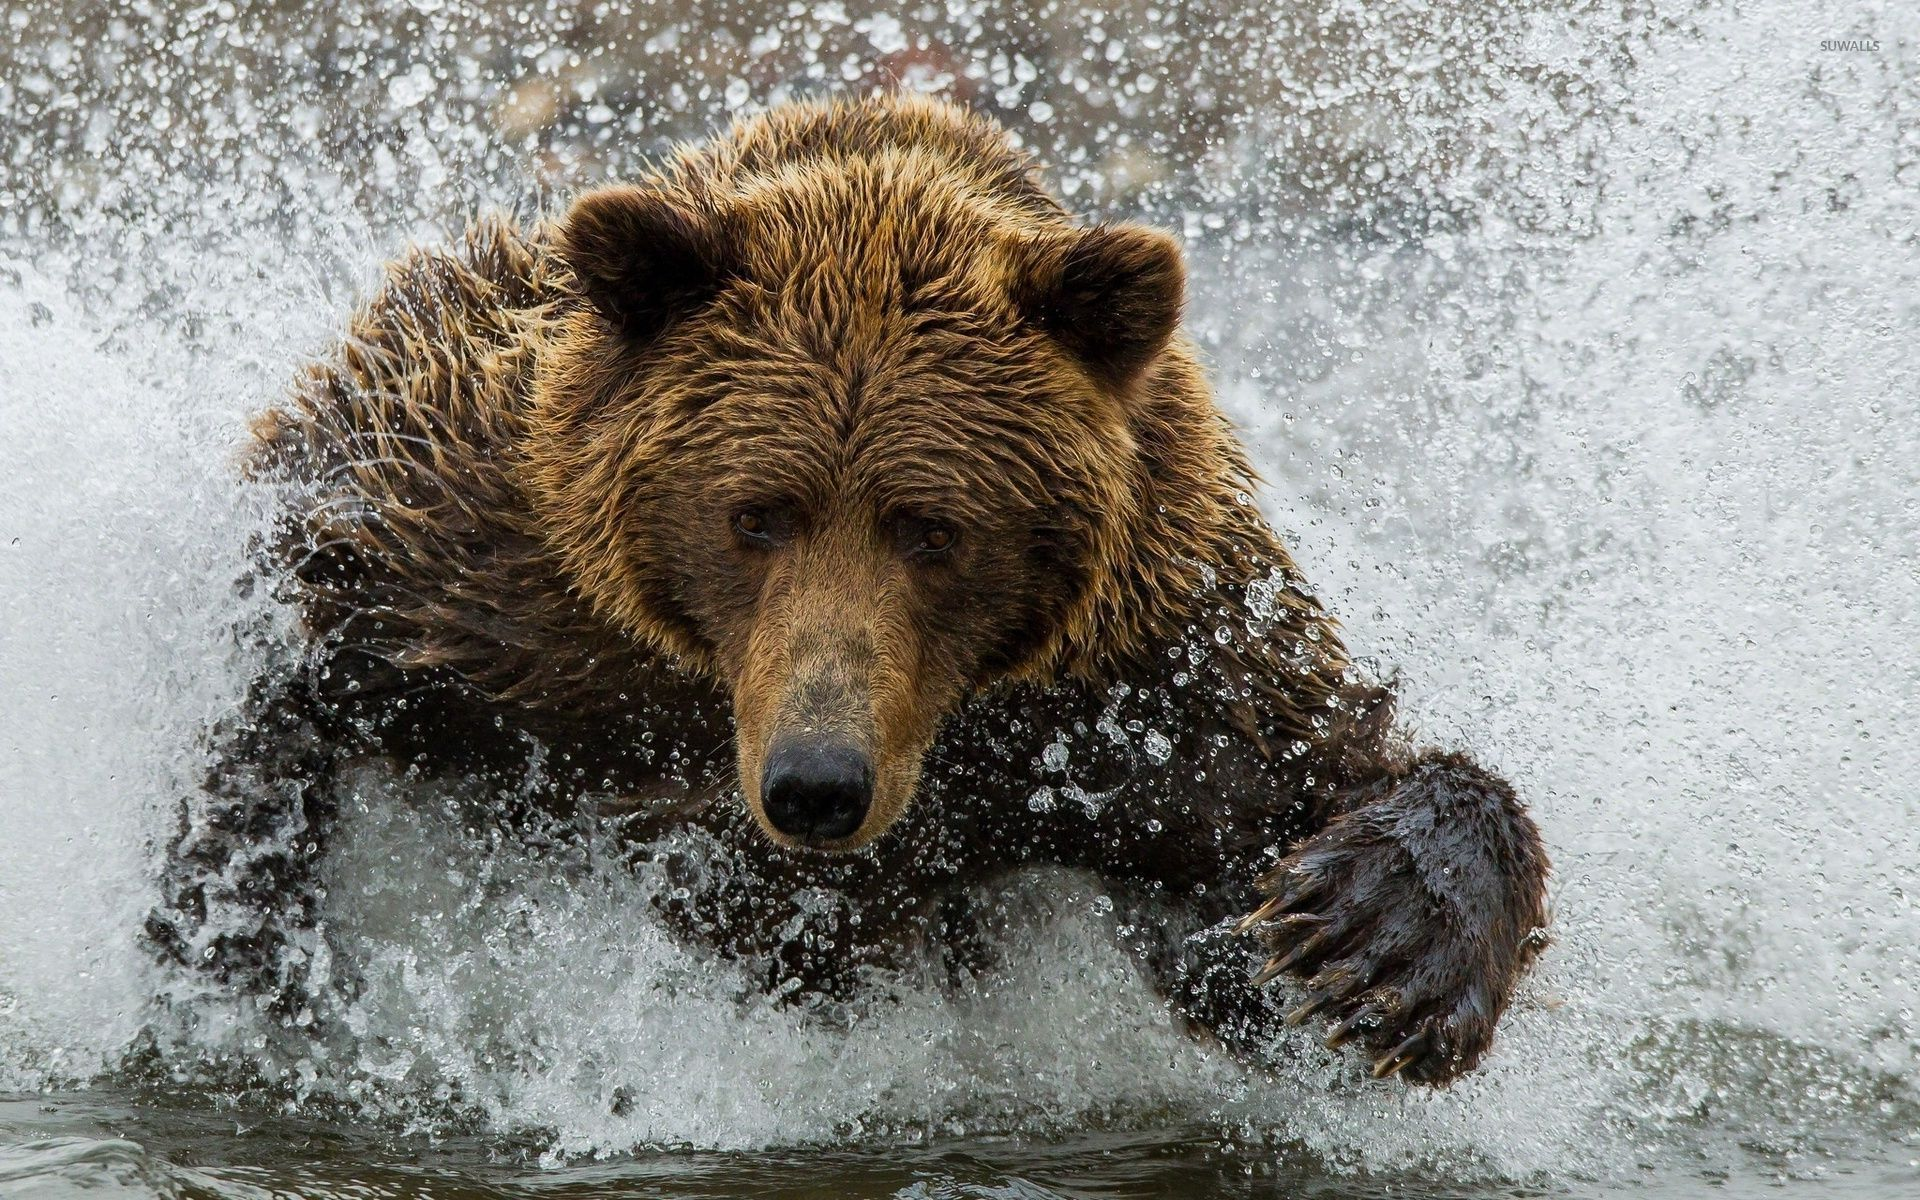 bear splashing in the water wallpaper - animal wallpapers - #54386